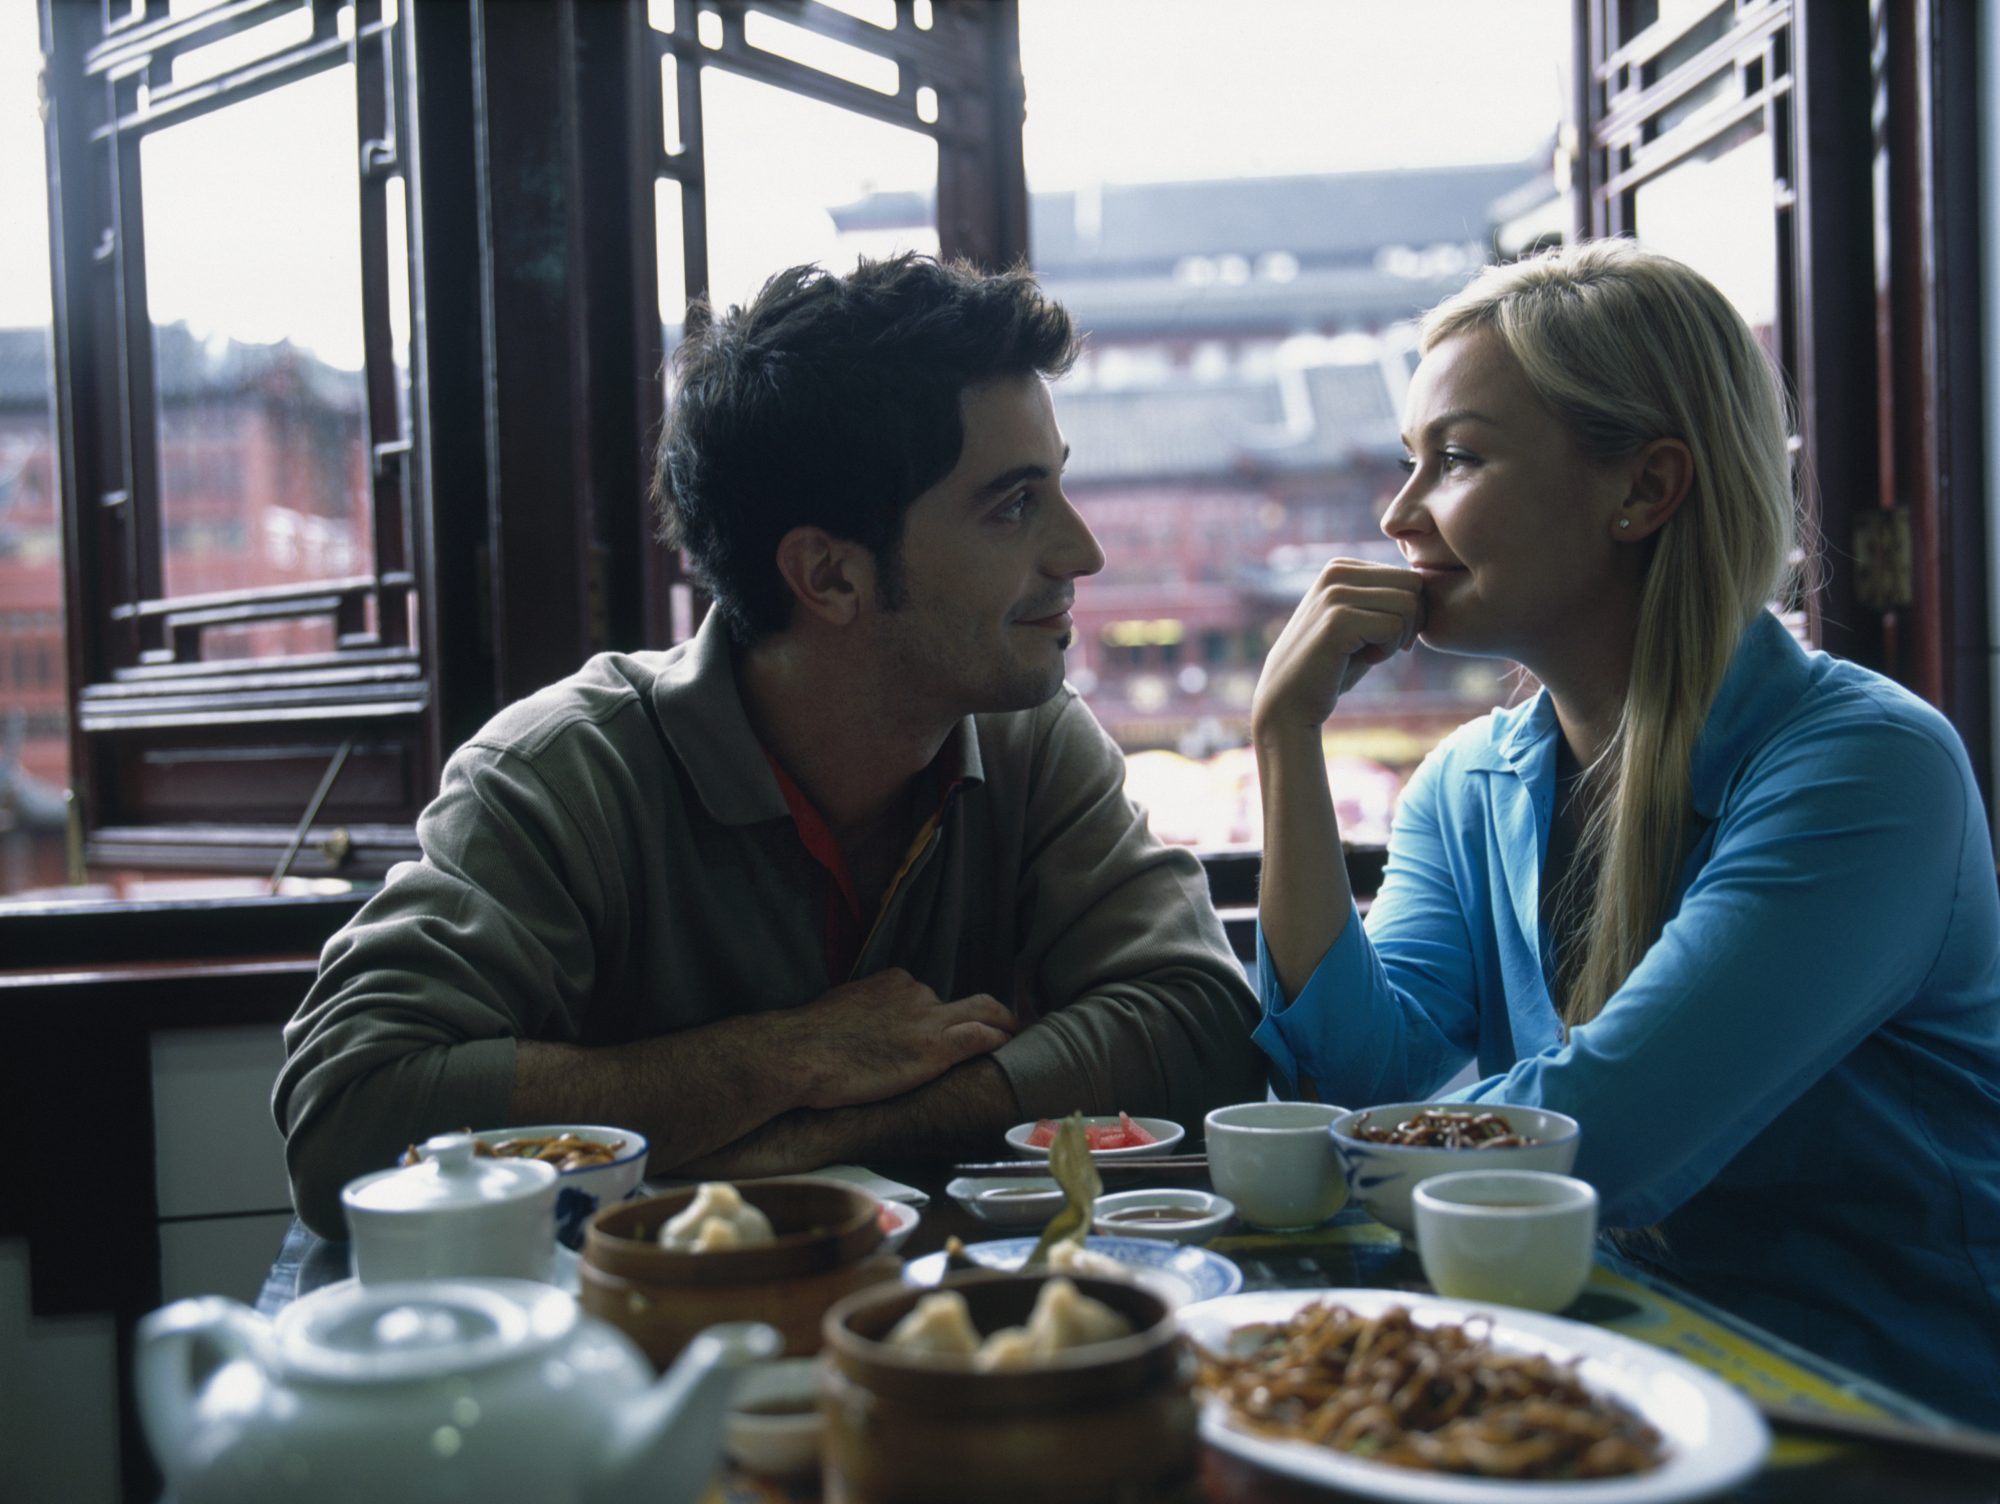 couple-restaurant-eating-disorder-disclosure